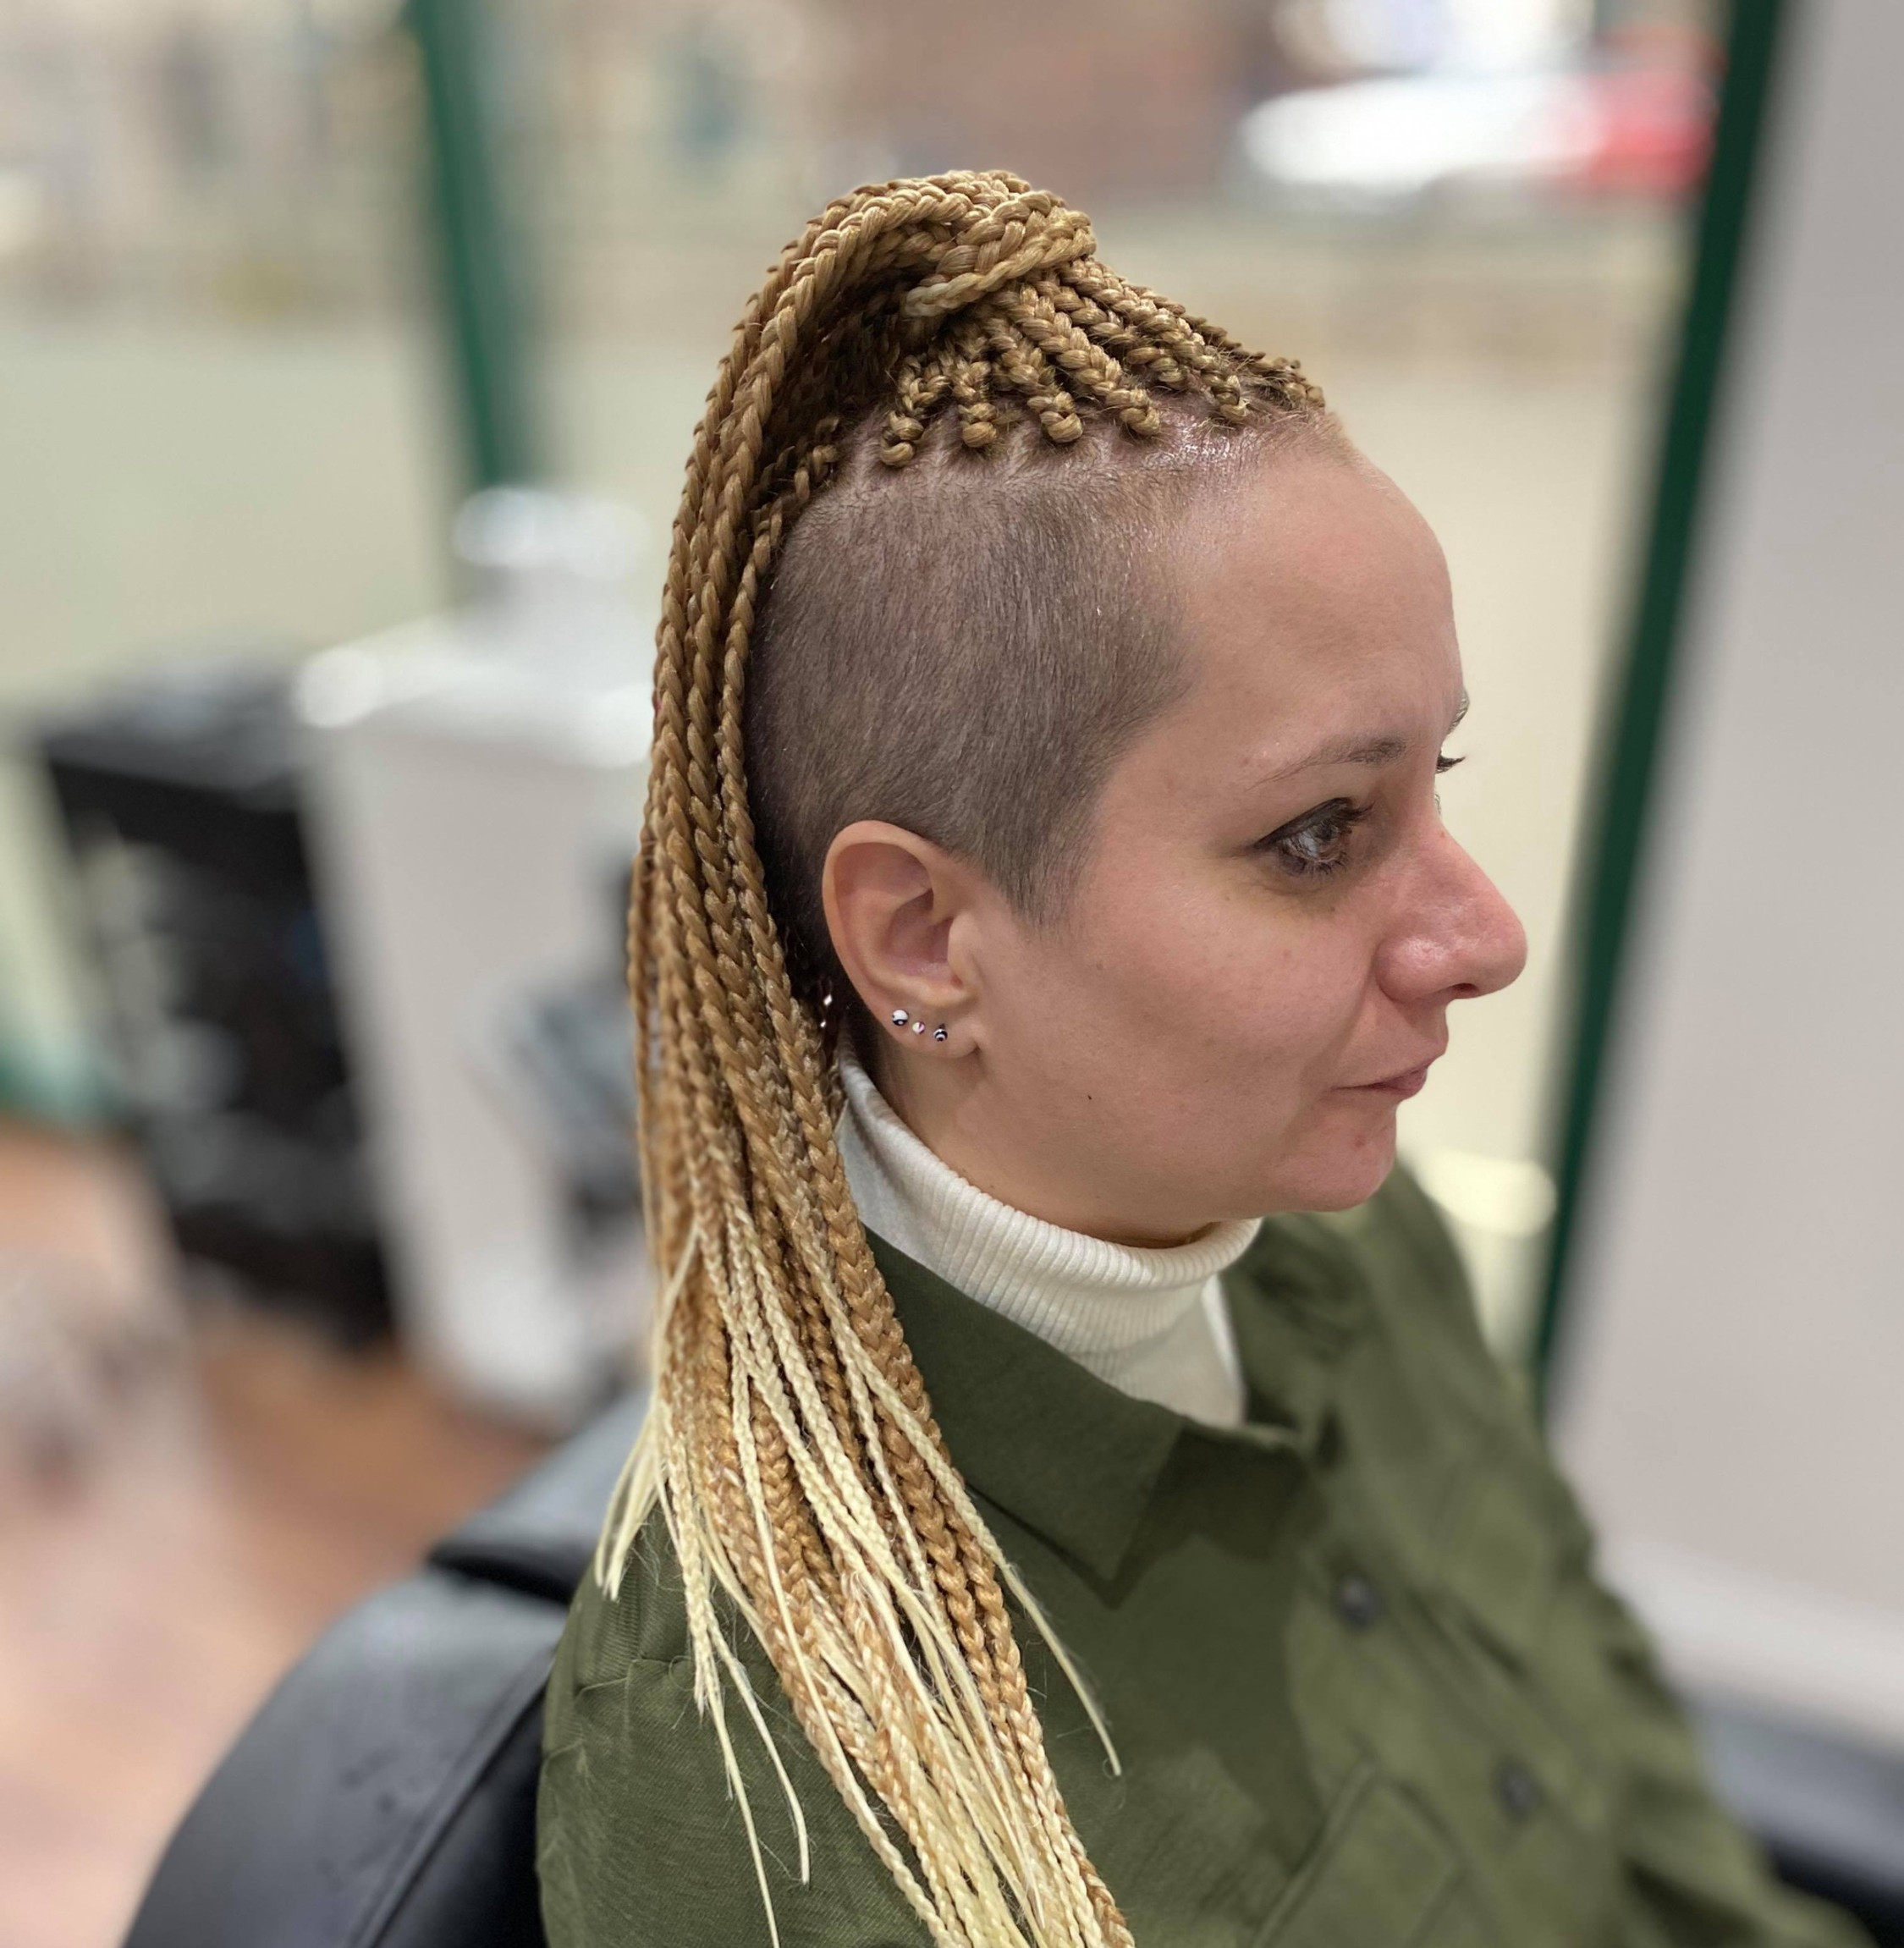 TOP braids with shaved sides